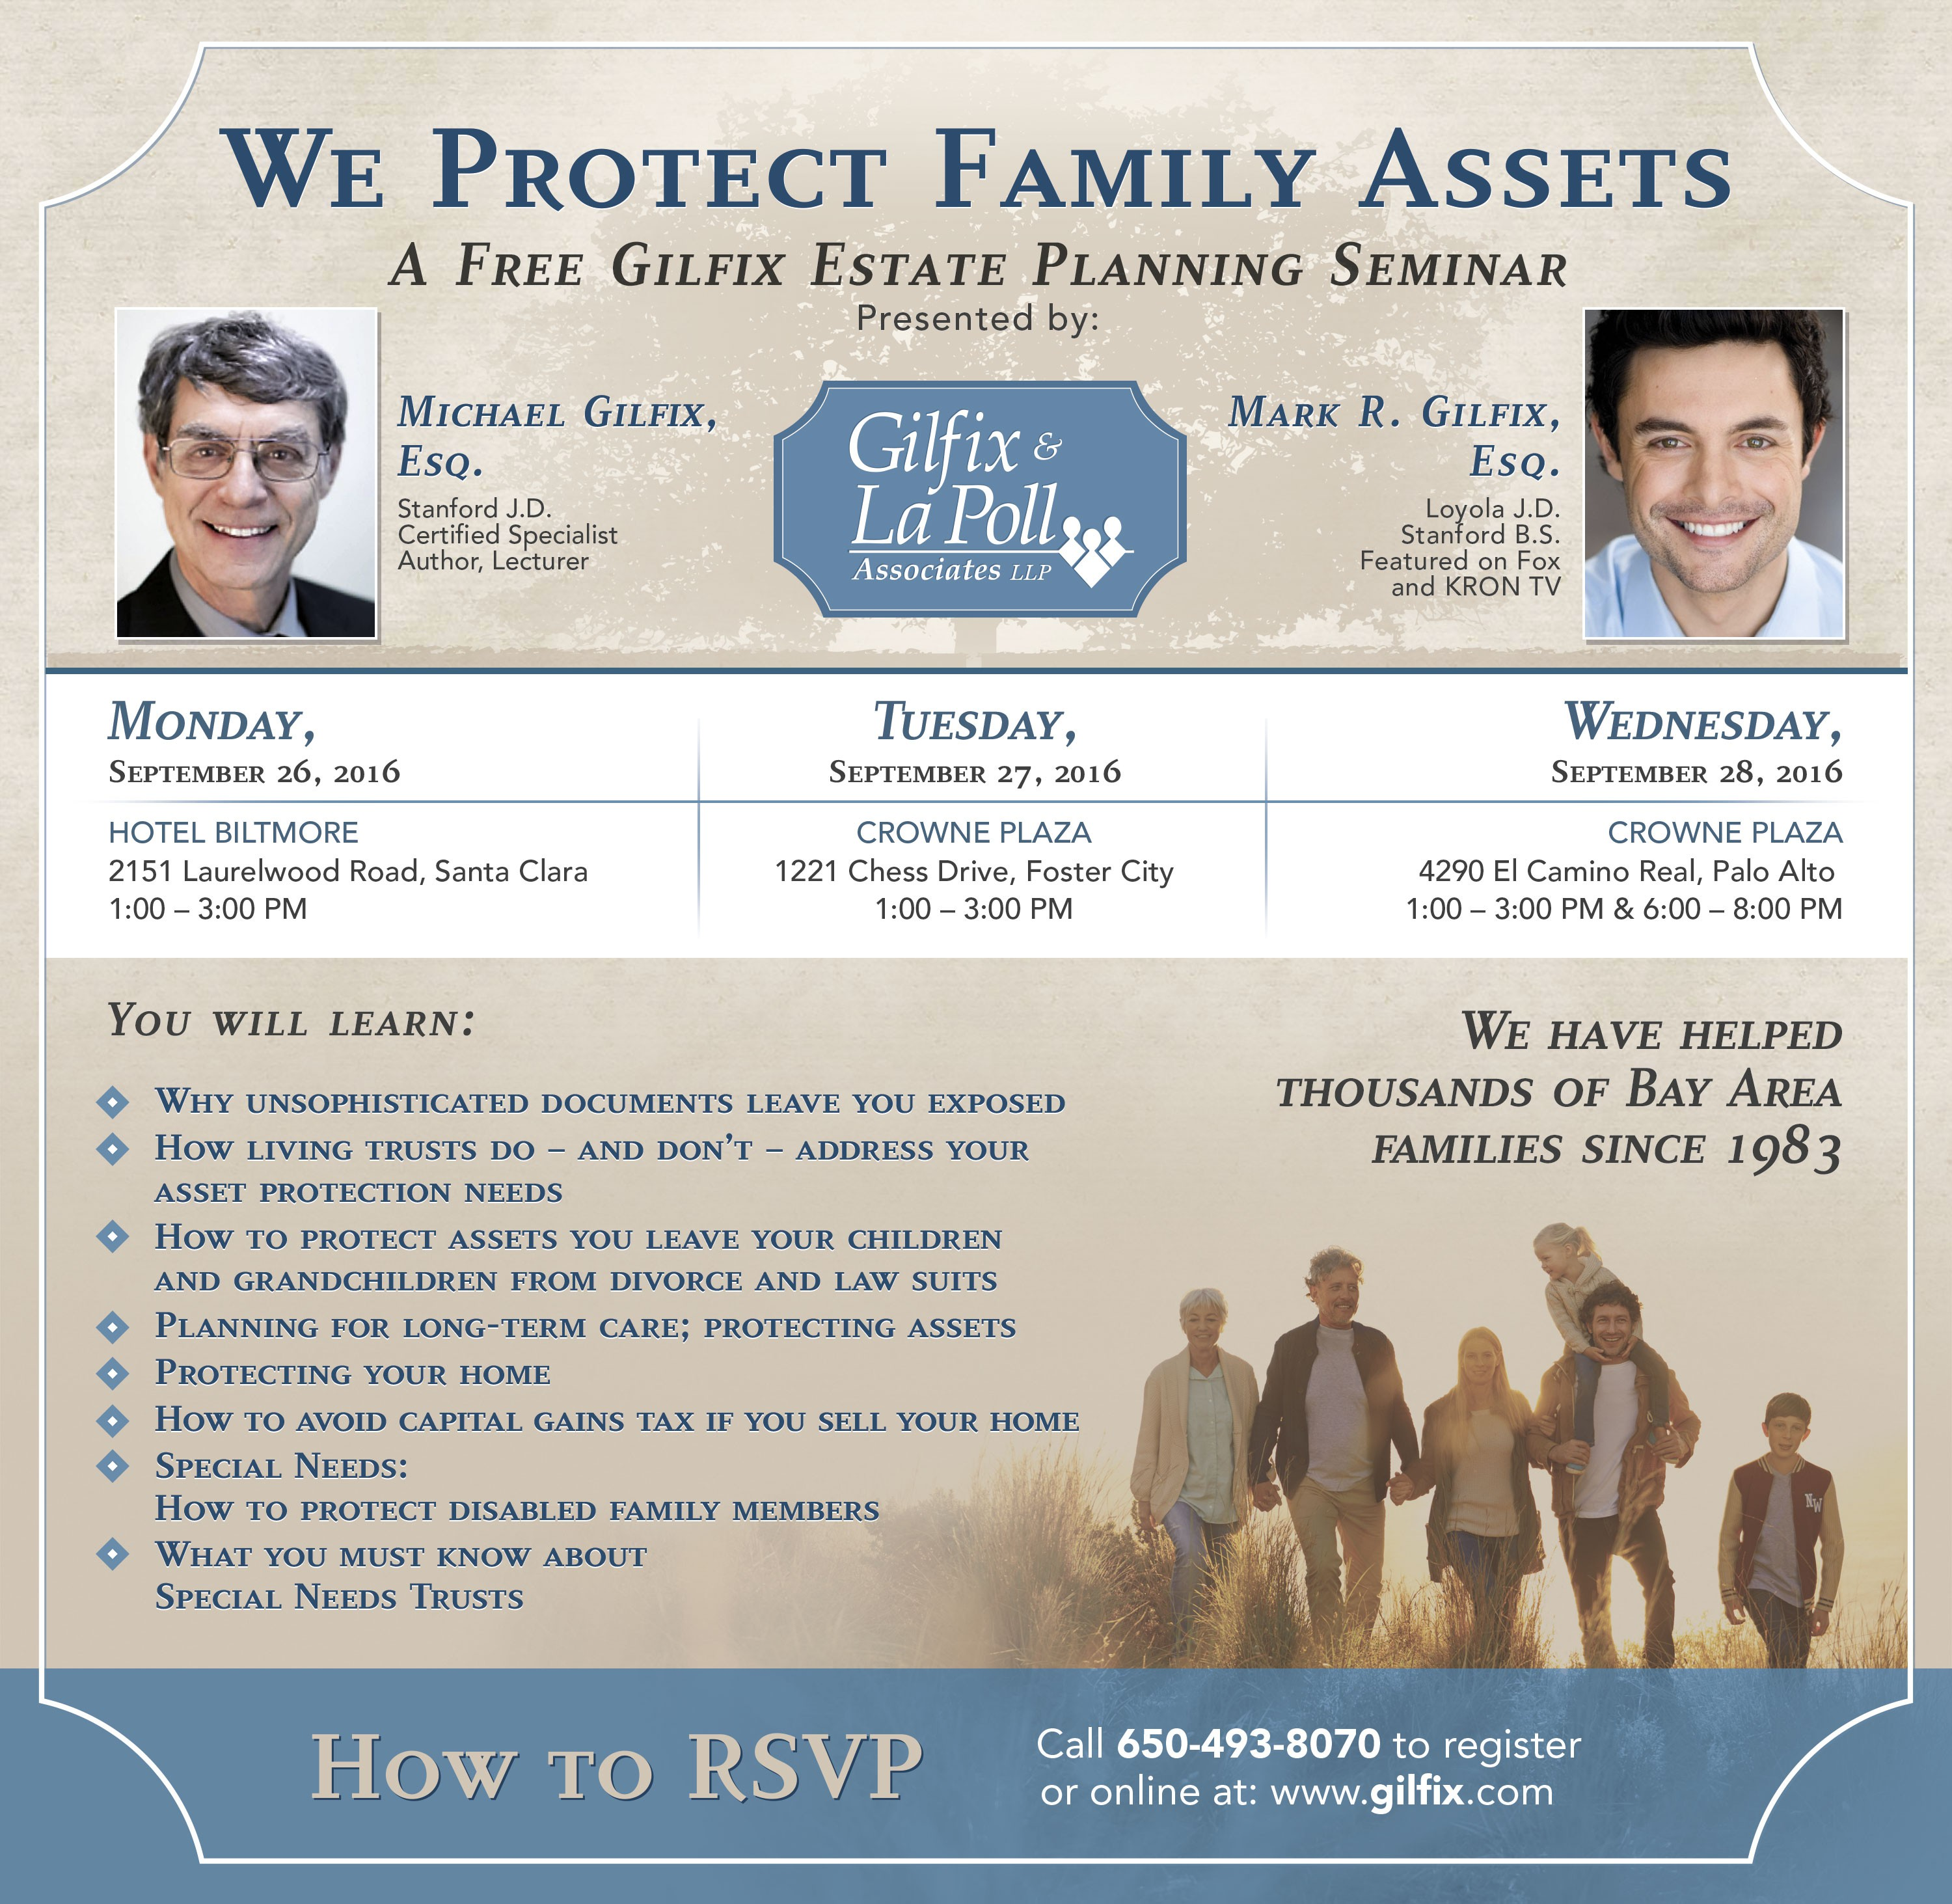 Create a newspaper ad for estate planning law firm